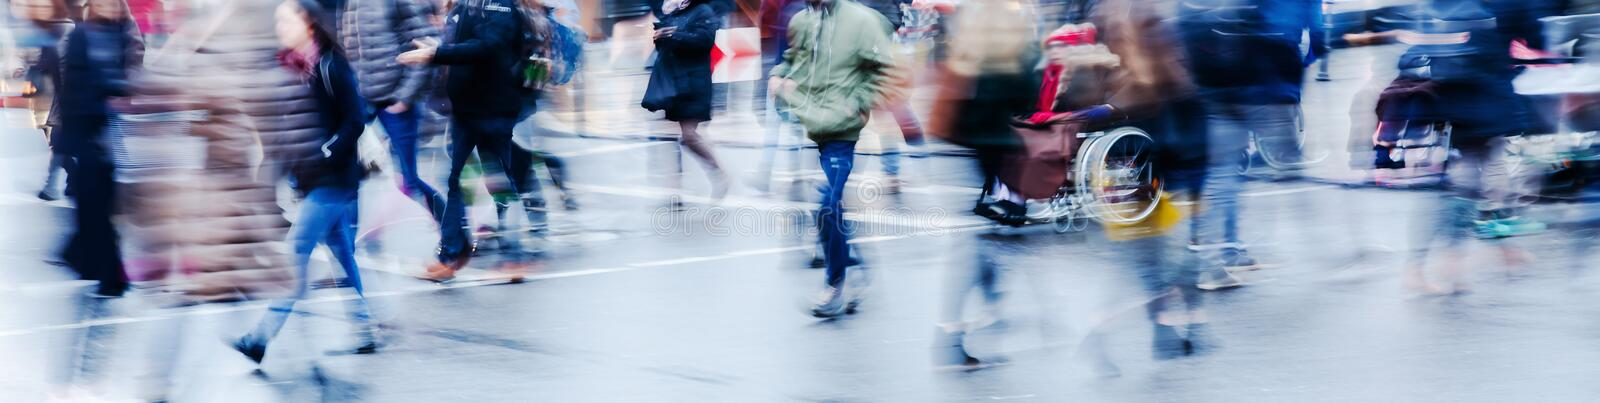 Wintry street scene in the city with people crossing a street. Picture in motion blur of a wintry street scene in the city with people crossing a street royalty free stock photography